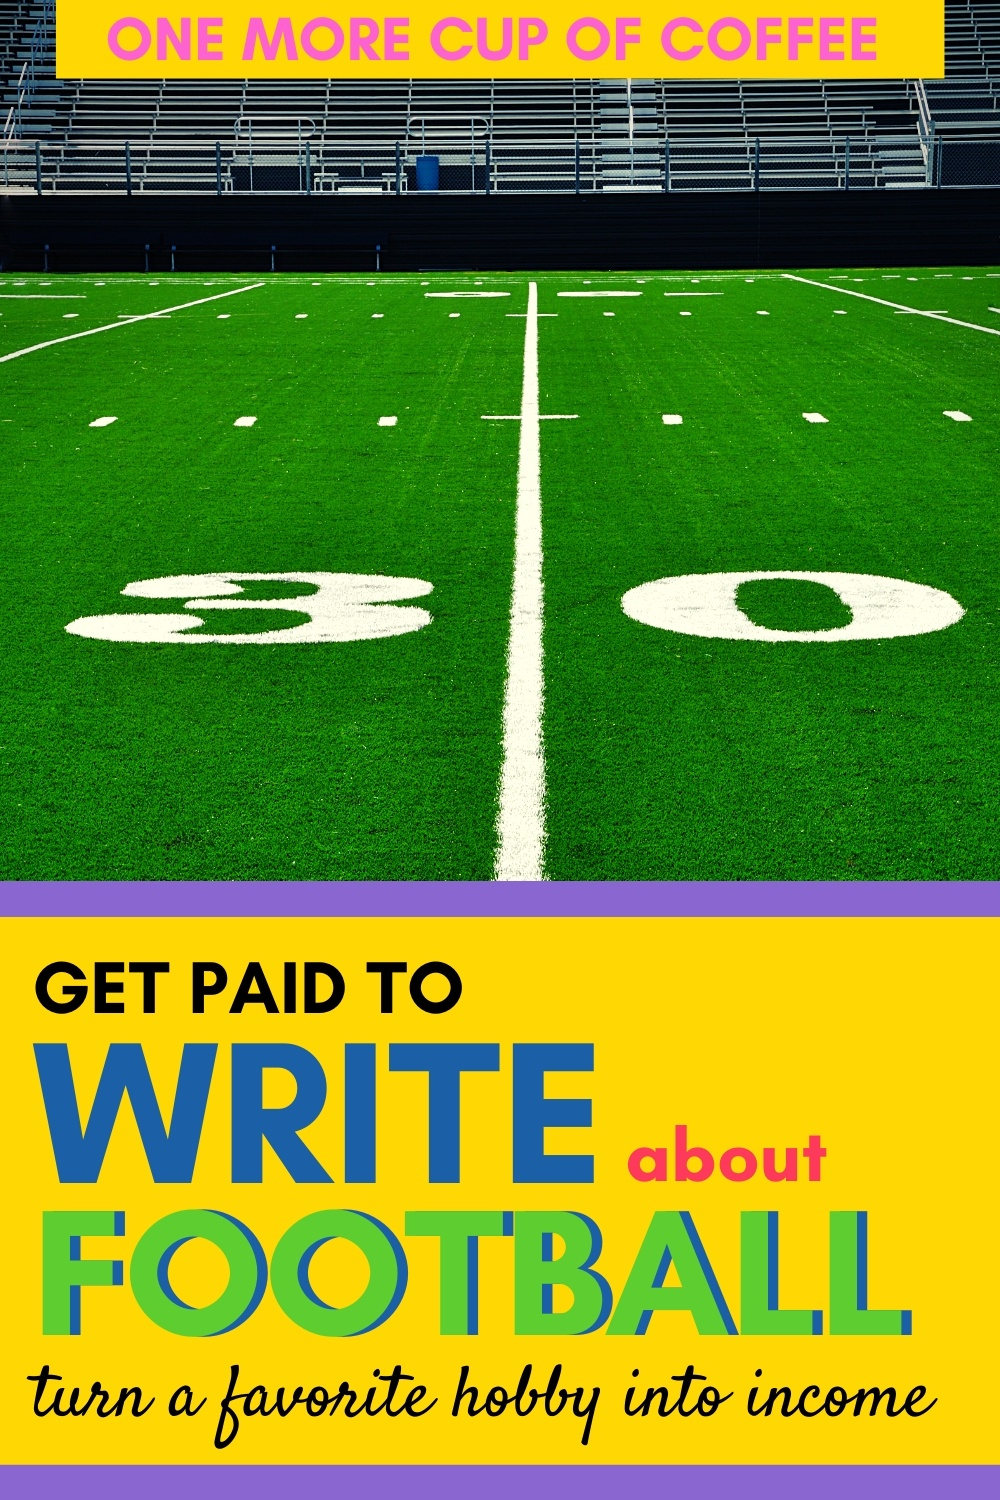 Football field illustrating getting paid to write about football.